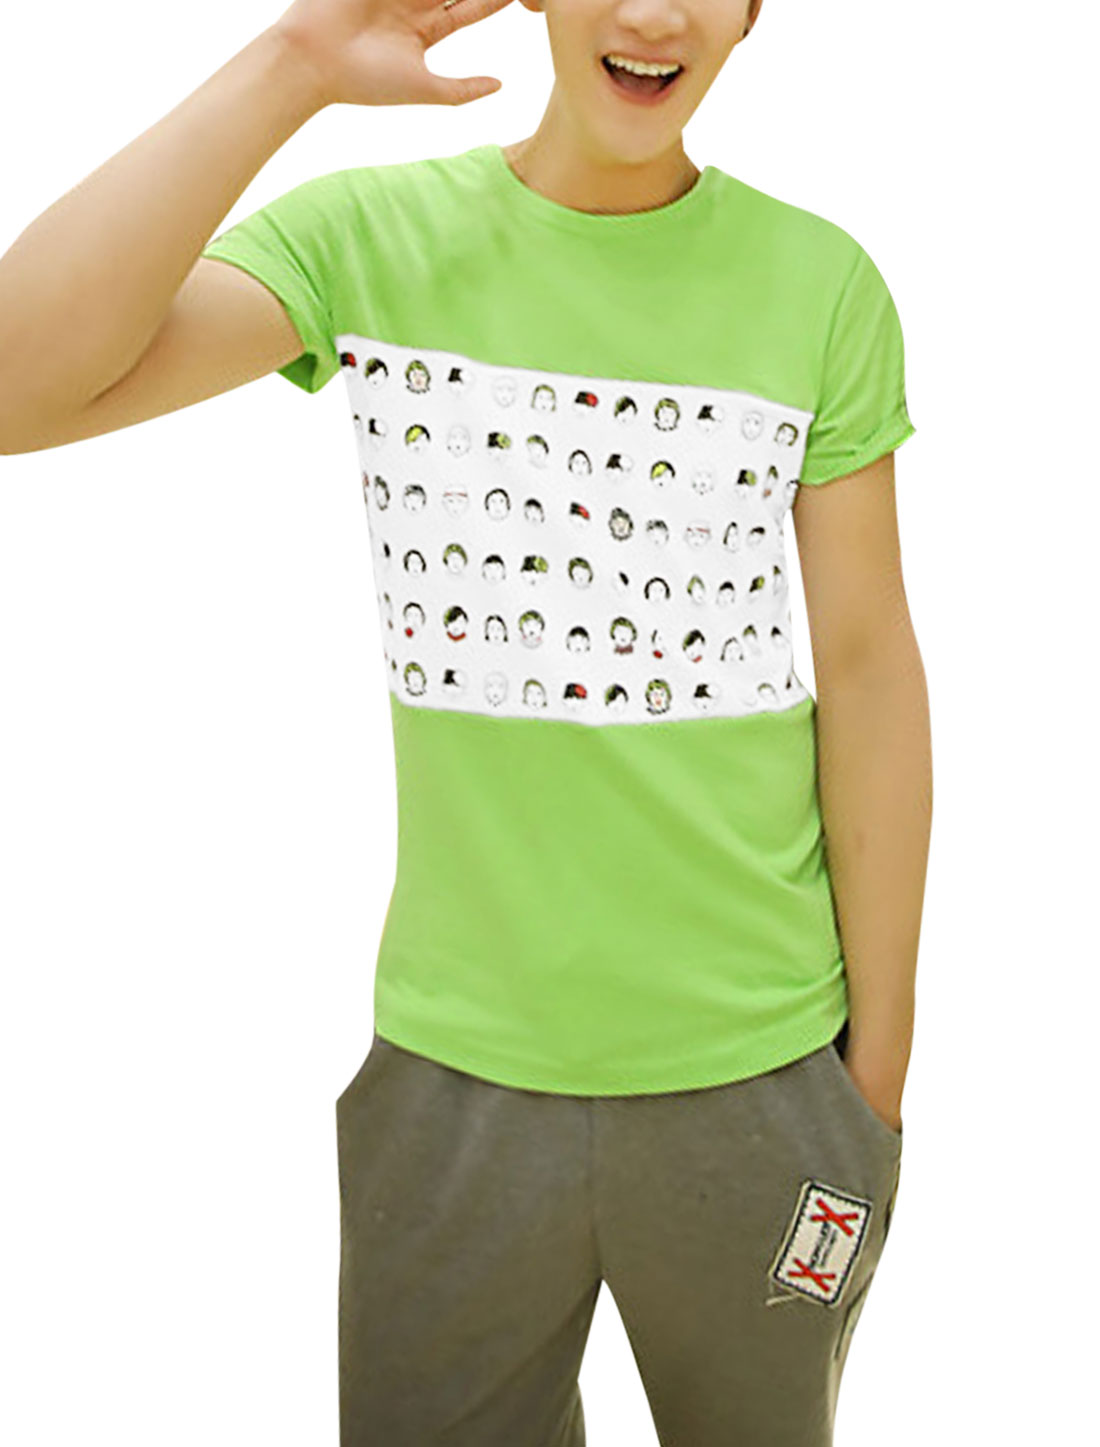 Man Portrait Pattern Panel Short Sleeve Casual Tee Shirt Light Green M